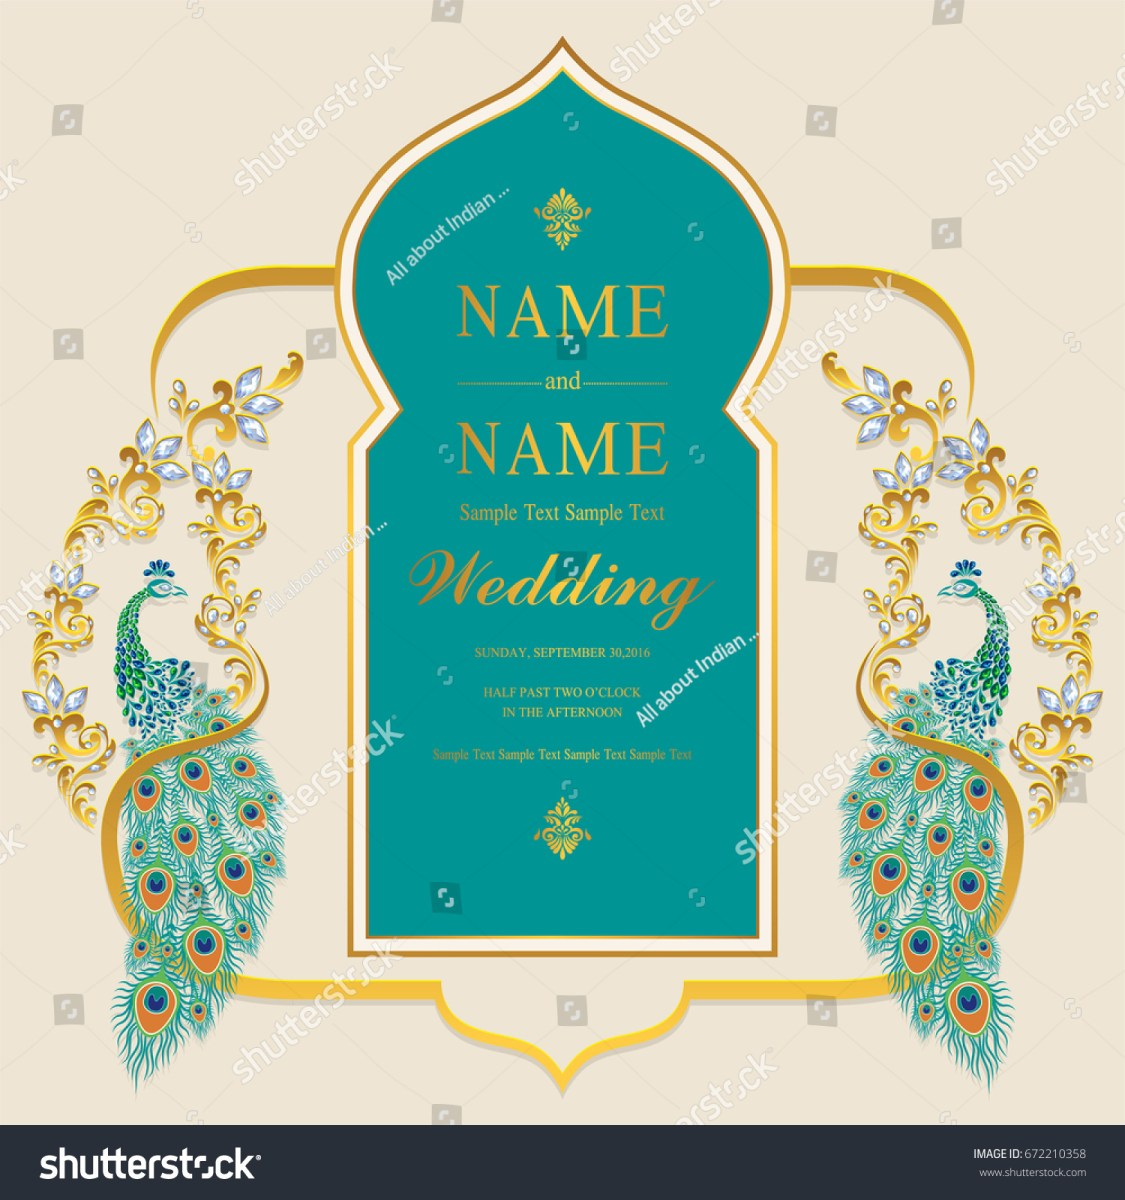 Indian Wedding Invitation Indian Wedding Invitation Card Templates Gold Stock Vector Royalty